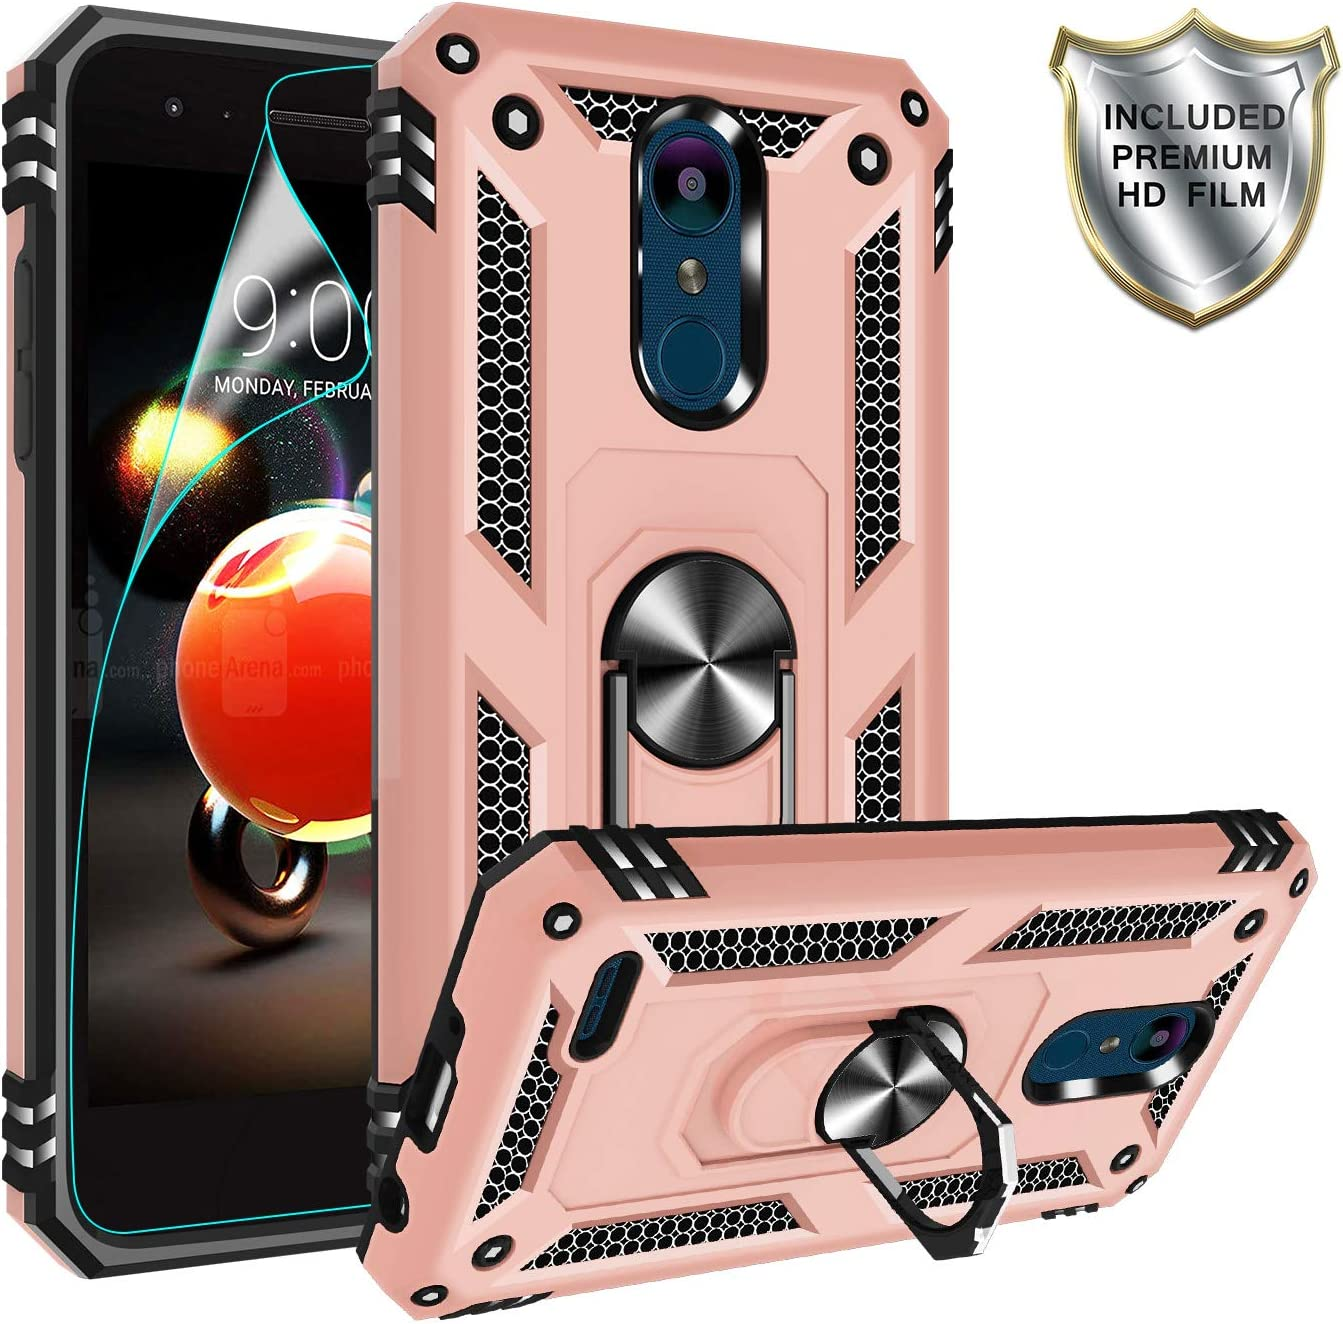 LG Zone 4 Case,LG Aristo 2/Aristo 3/K8 2018/Tribute Dynasty/X210/LV3 2018/K8+ Case with HD Screen Protector,Gritup 360 Degree Rotating Metal Ring Holder Kickstand Phone Case for LG Aristo 2 Rose Gold